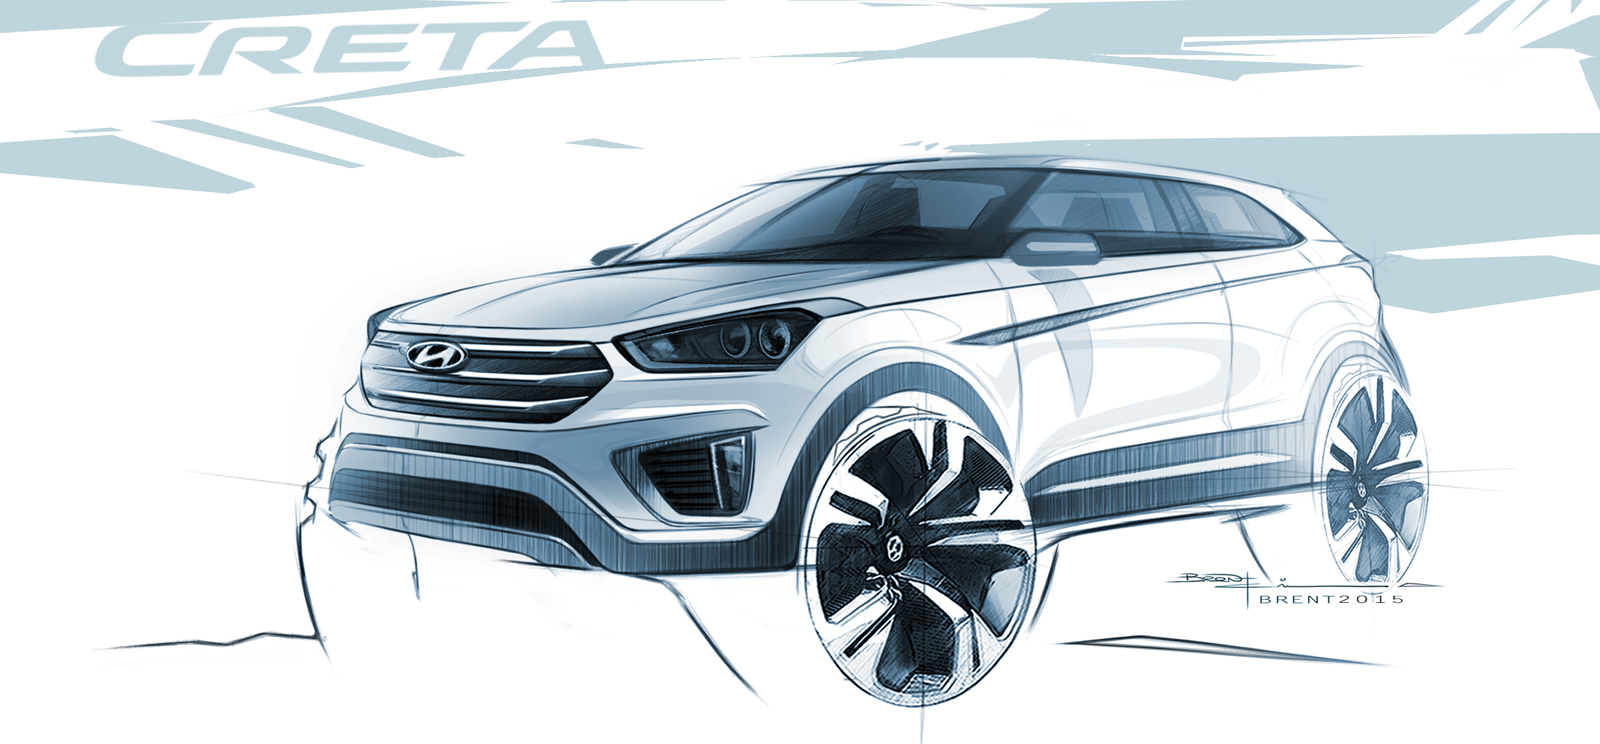 This Is Hyundai S New Creta Baby Suv In Sketch Form Autoevolution